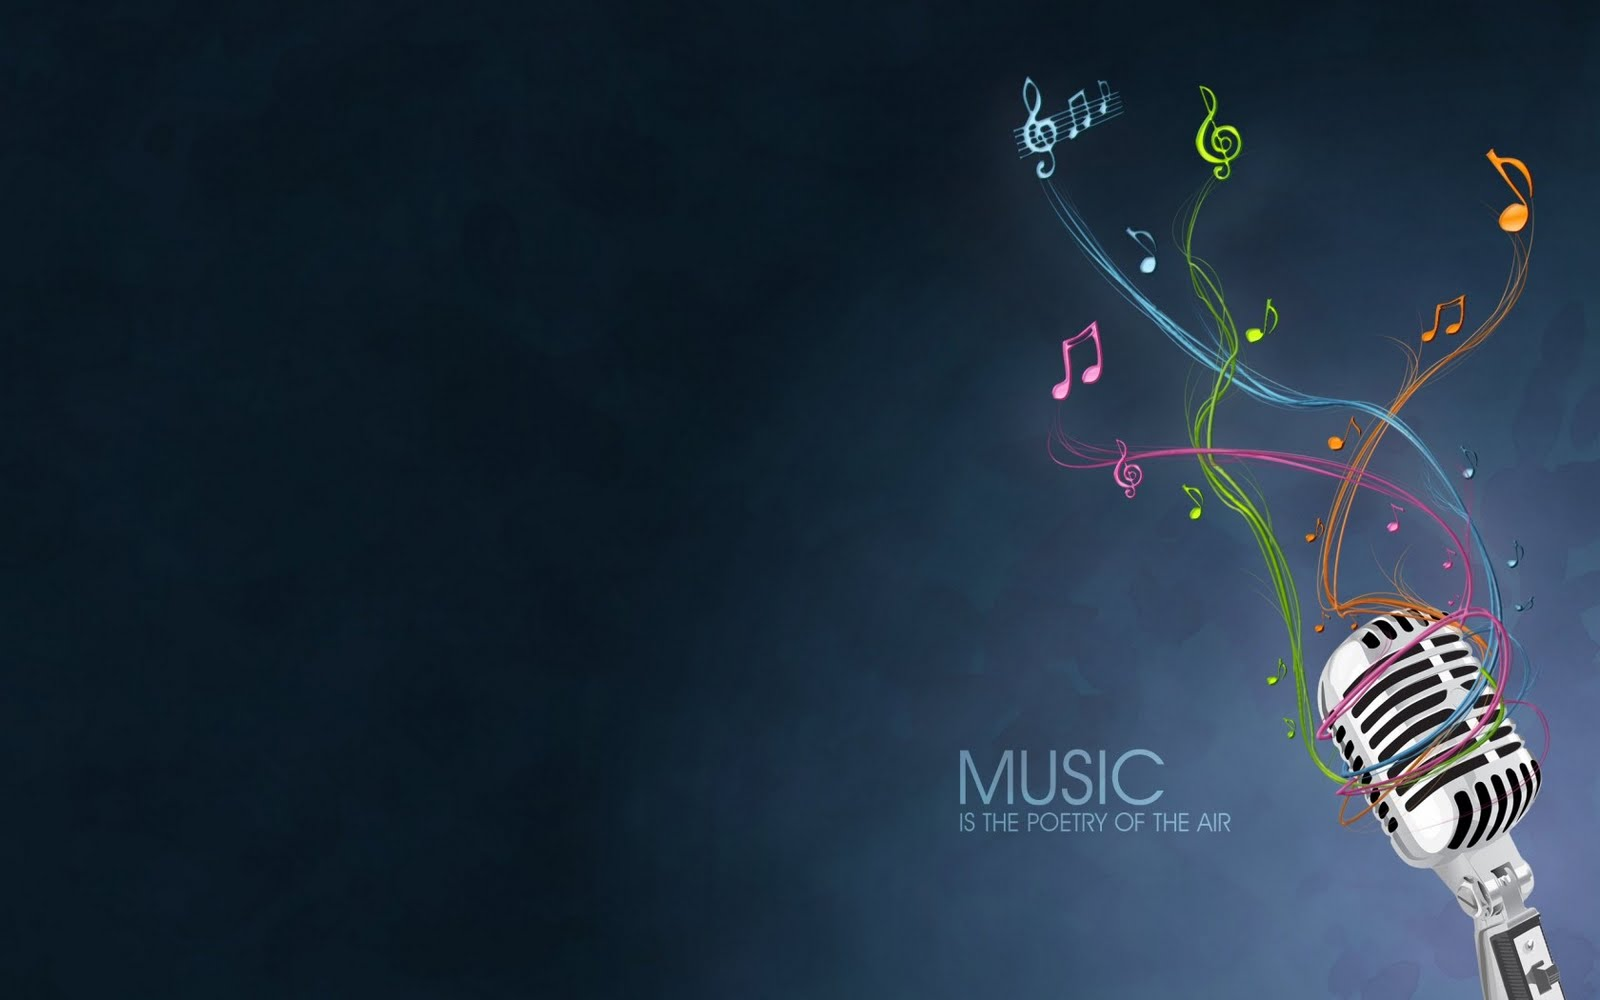 deroucicho 35 Awesome Music wallpapers 1600x1000